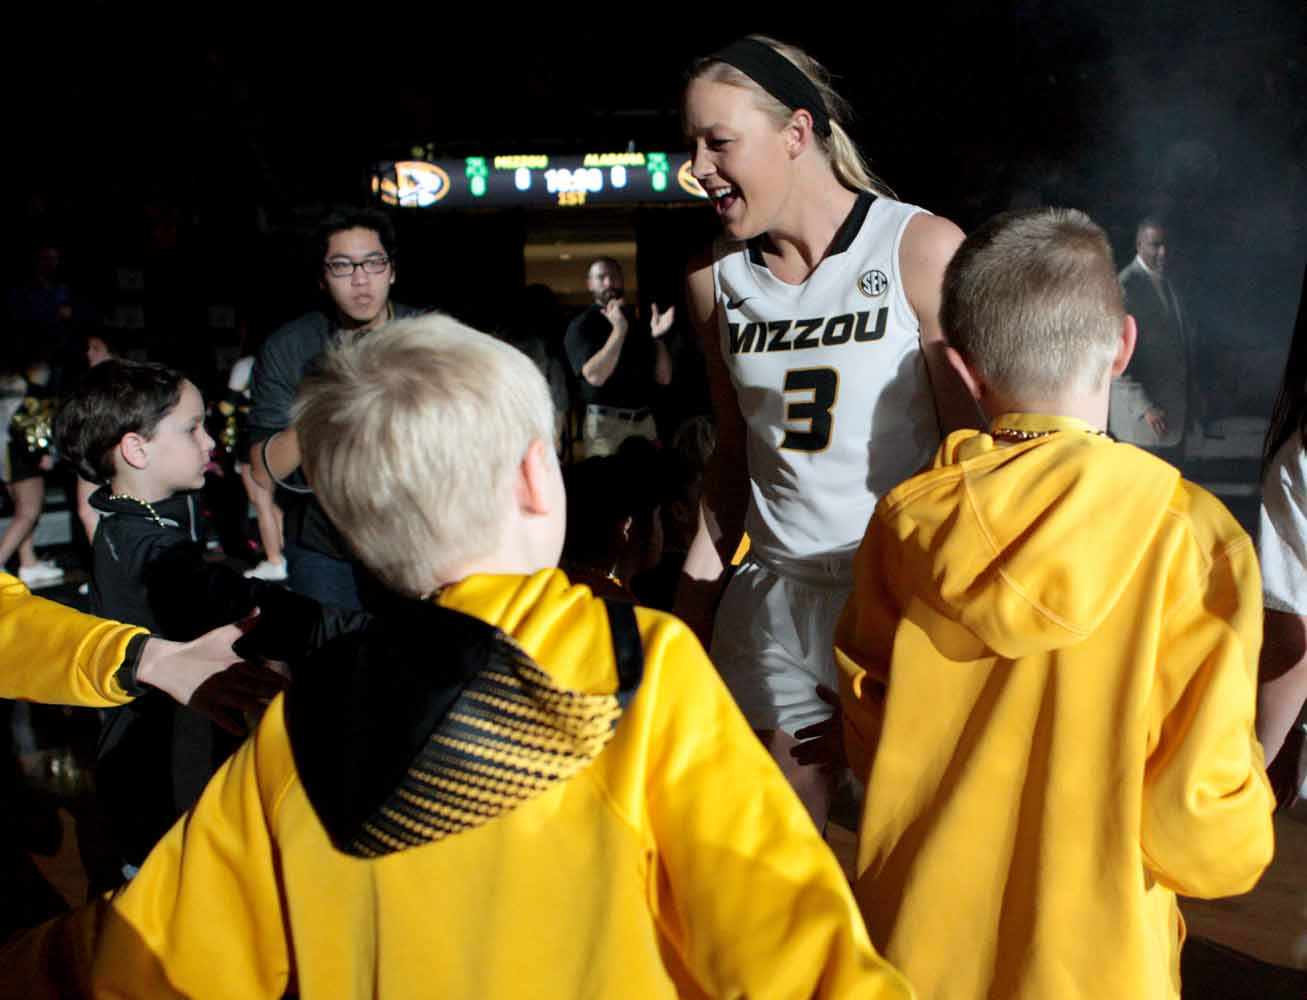 Sophie Cunningham (3) runs onto the court, greeting fans, after being called in Mizzou's starting lineup against Alabama Thursday evening, Feb. 11, 2016.